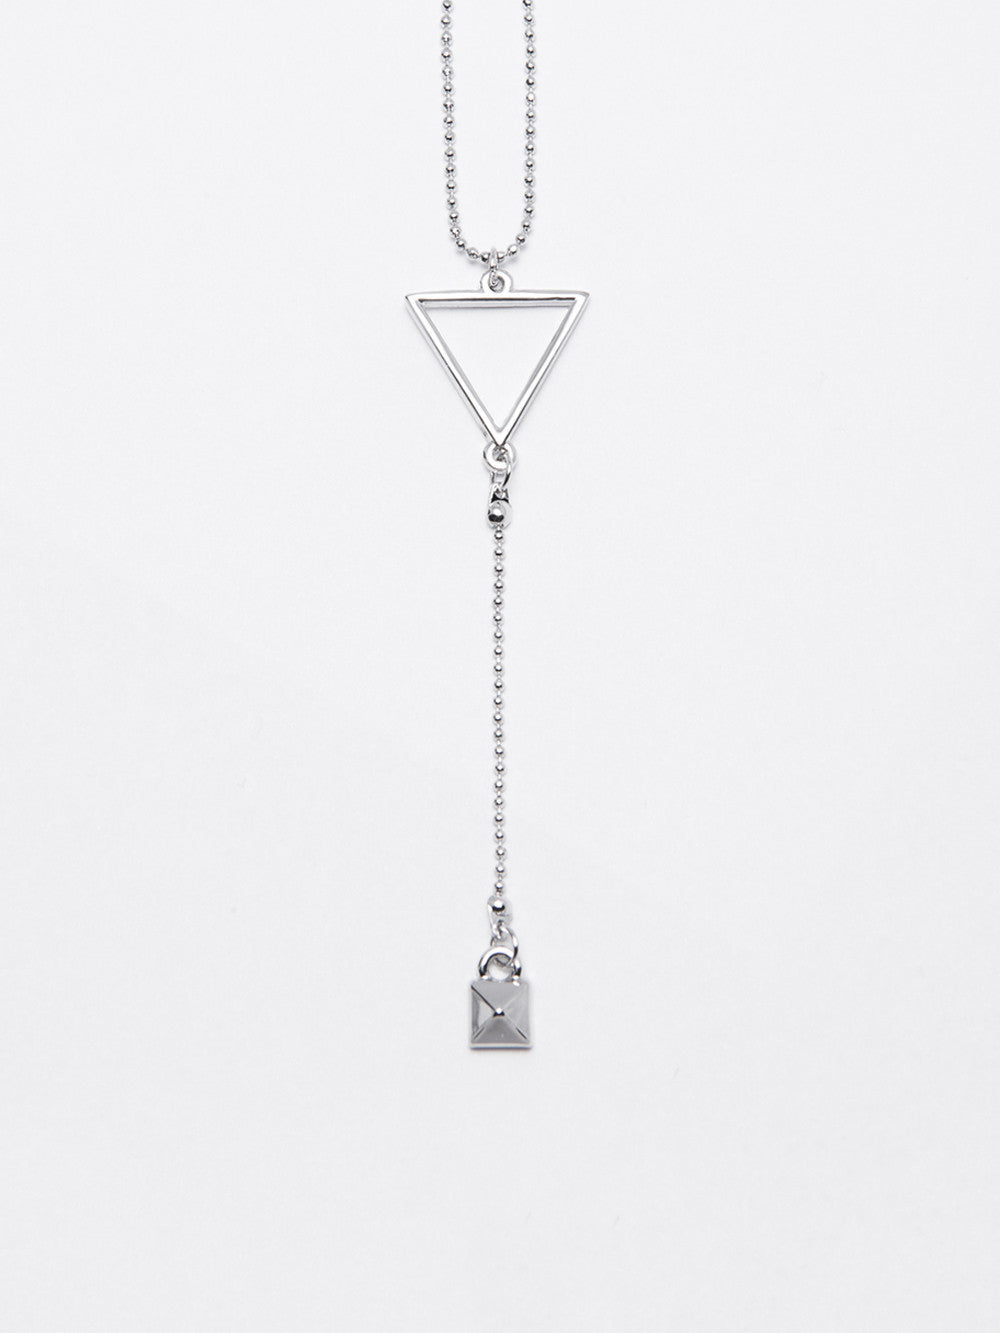 Reckless Girls Womens - Jewelry - Necklace Silver Hypno Necklace